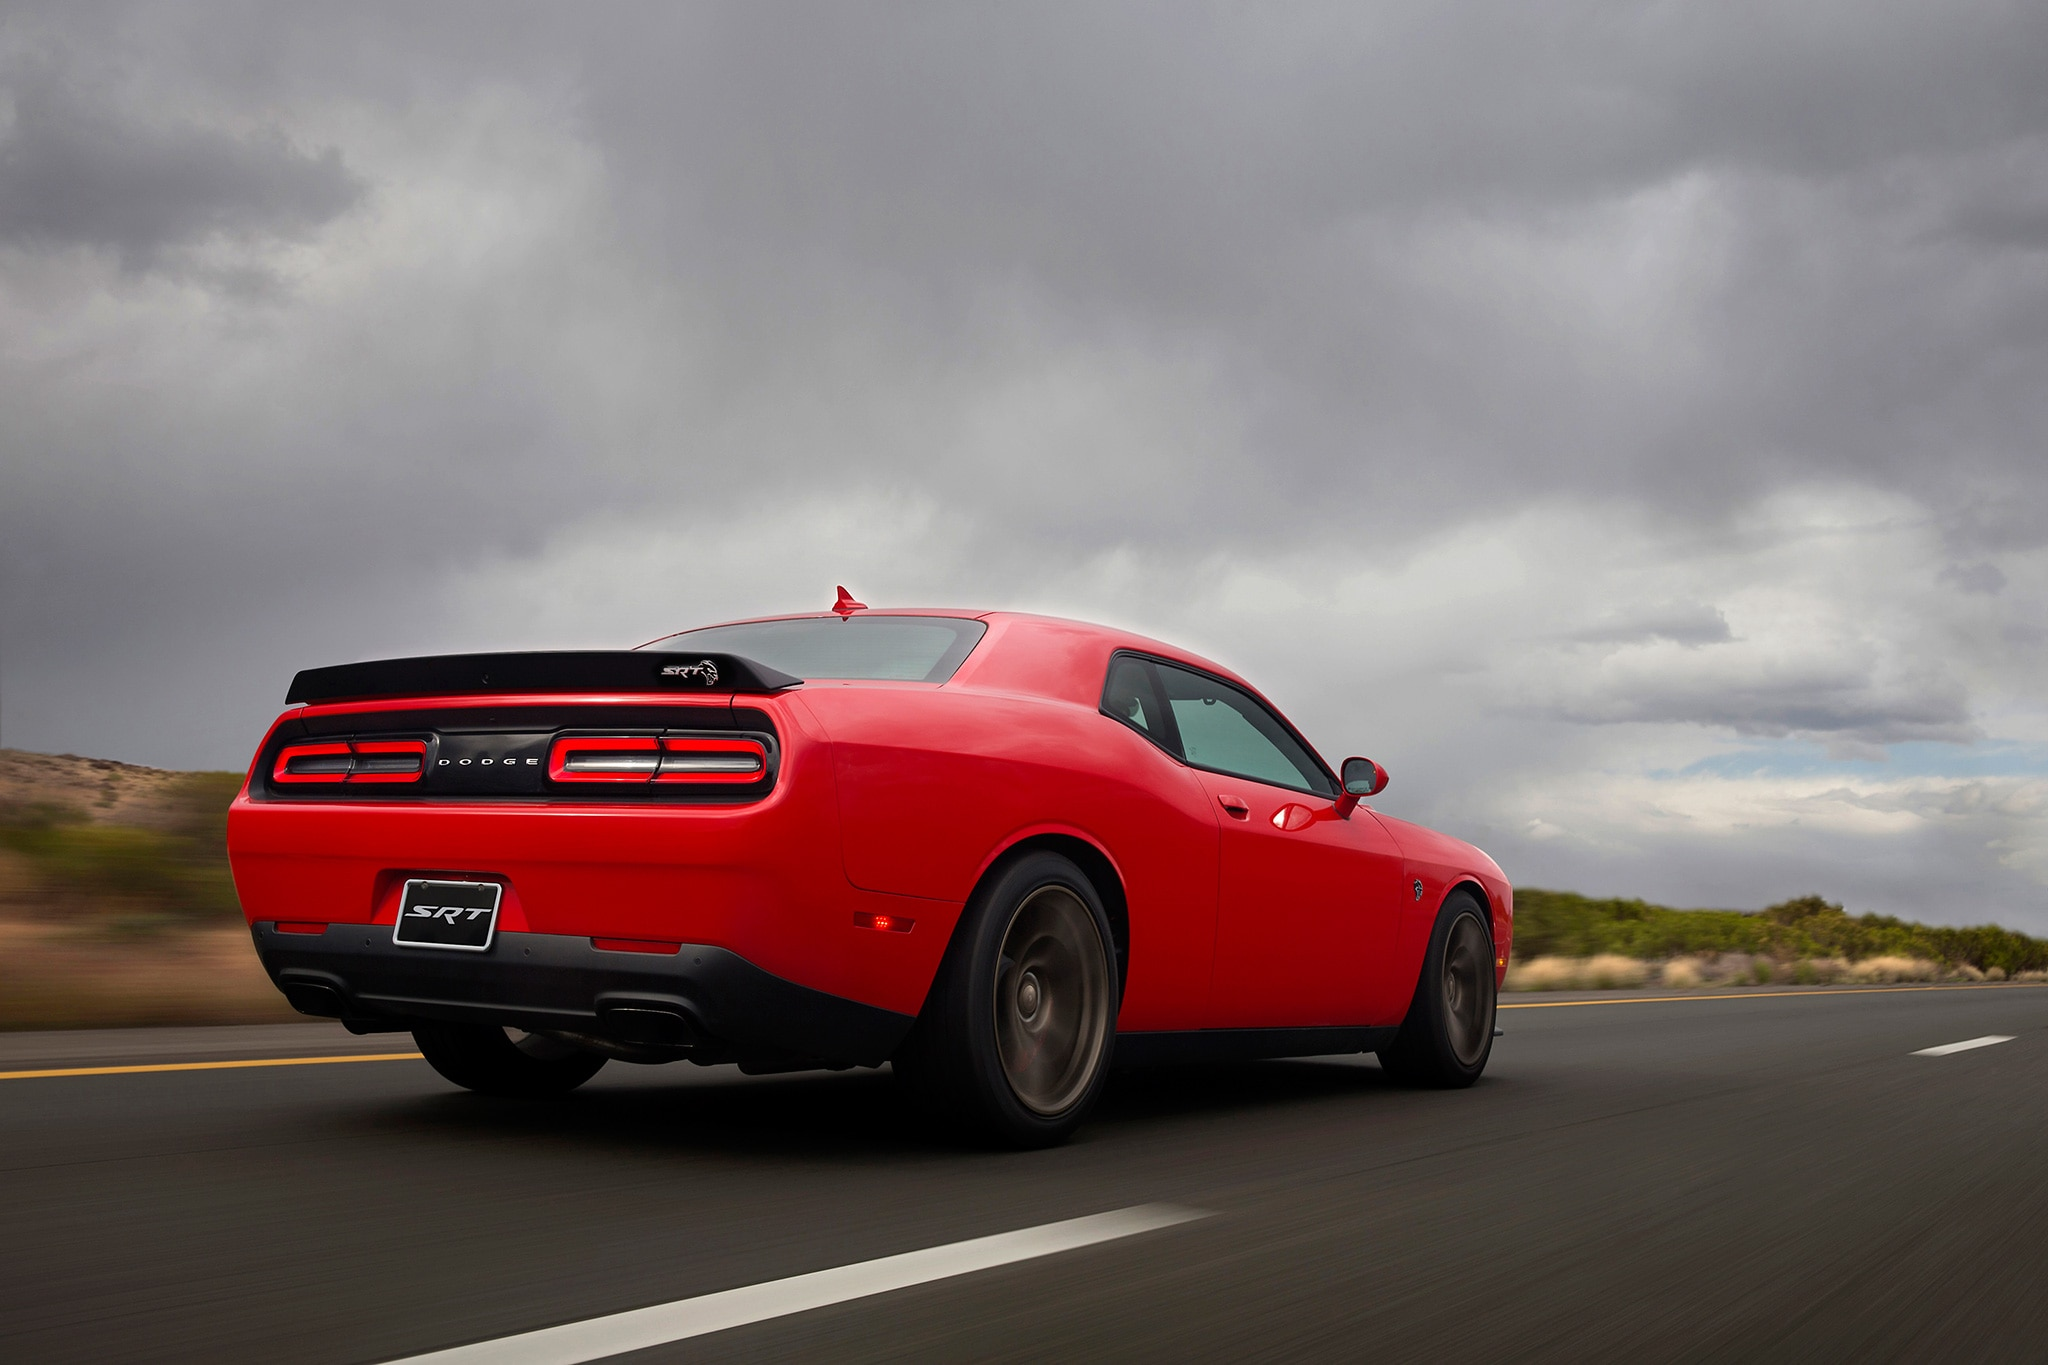 dodge challenger to receive awd variant wide body hellcat adr report. Cars Review. Best American Auto & Cars Review